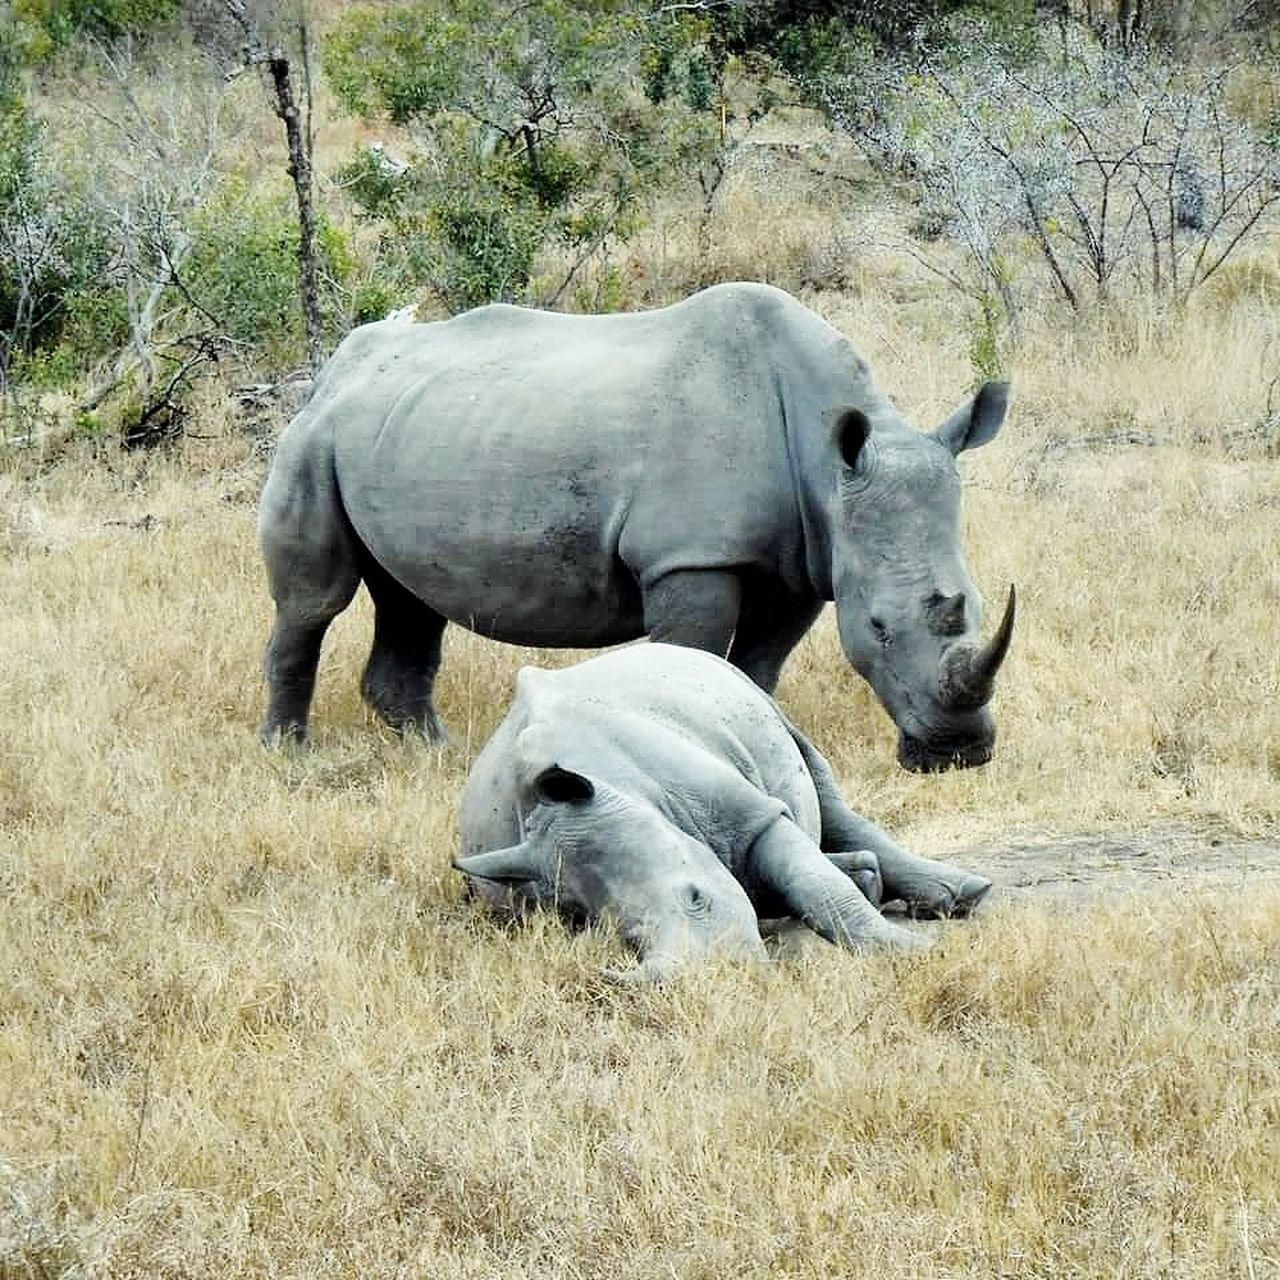 Rhinos in Kruger Rhinos Savetherhinos Stoppoaching Stoppoachers Krugernationalpark South Africa Africa Africa Wildlife Wildlife Wildlife Photography Travel Travel Destinations Travel Photography